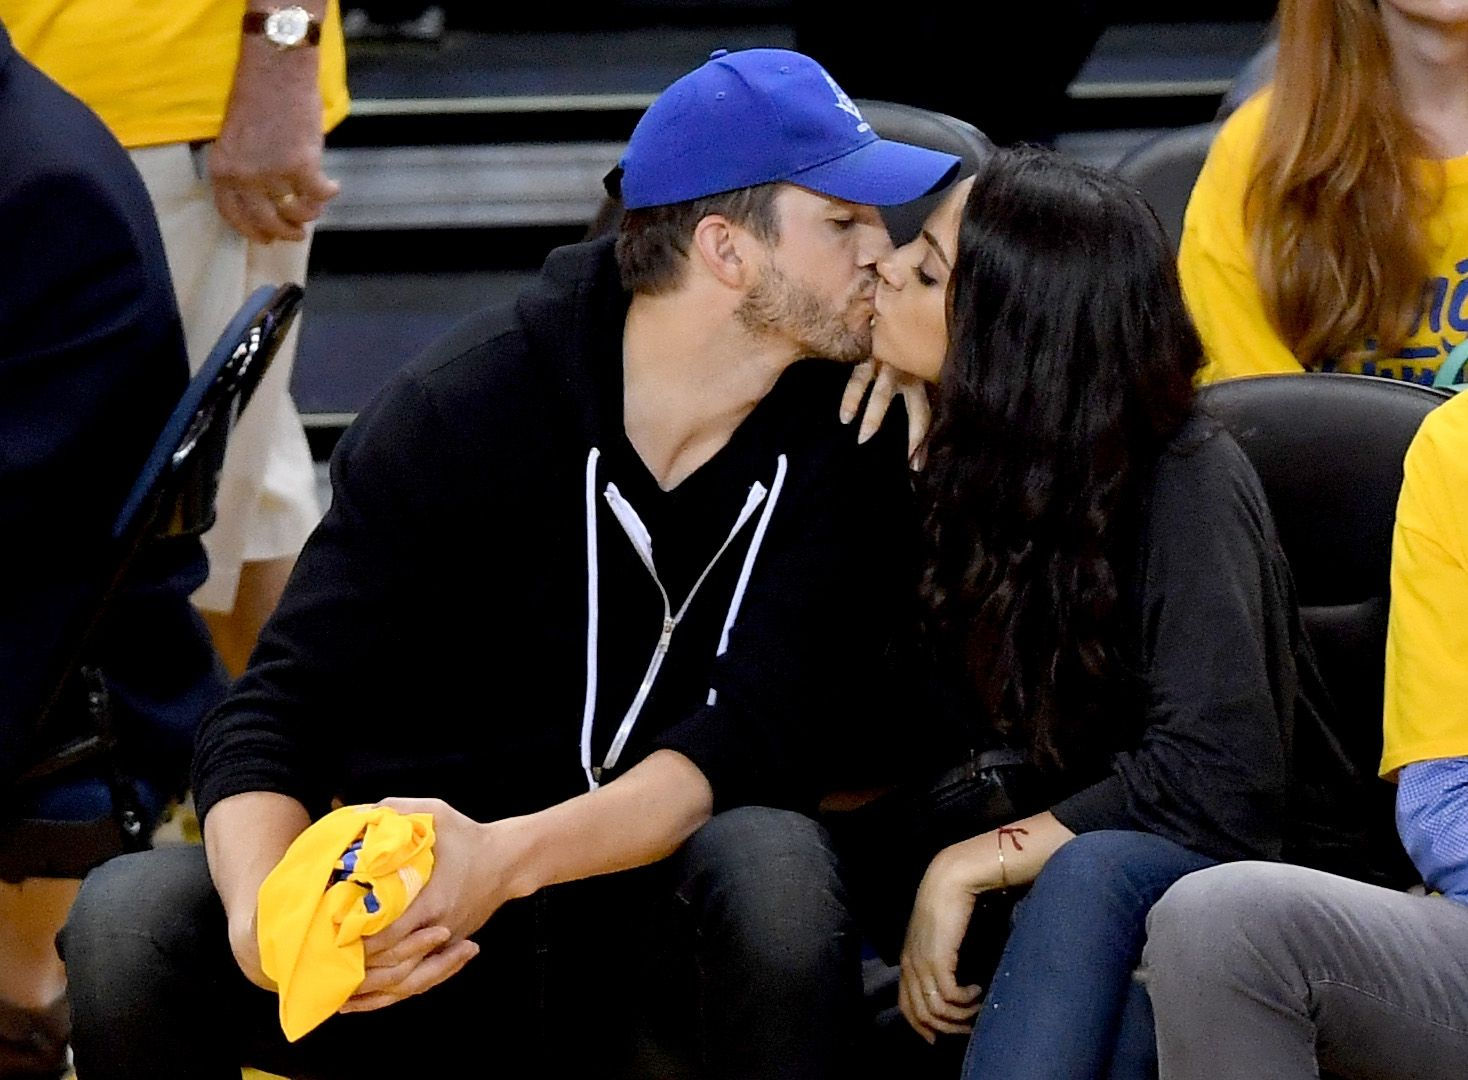 ashton kutcher and mila kunis dating timeline